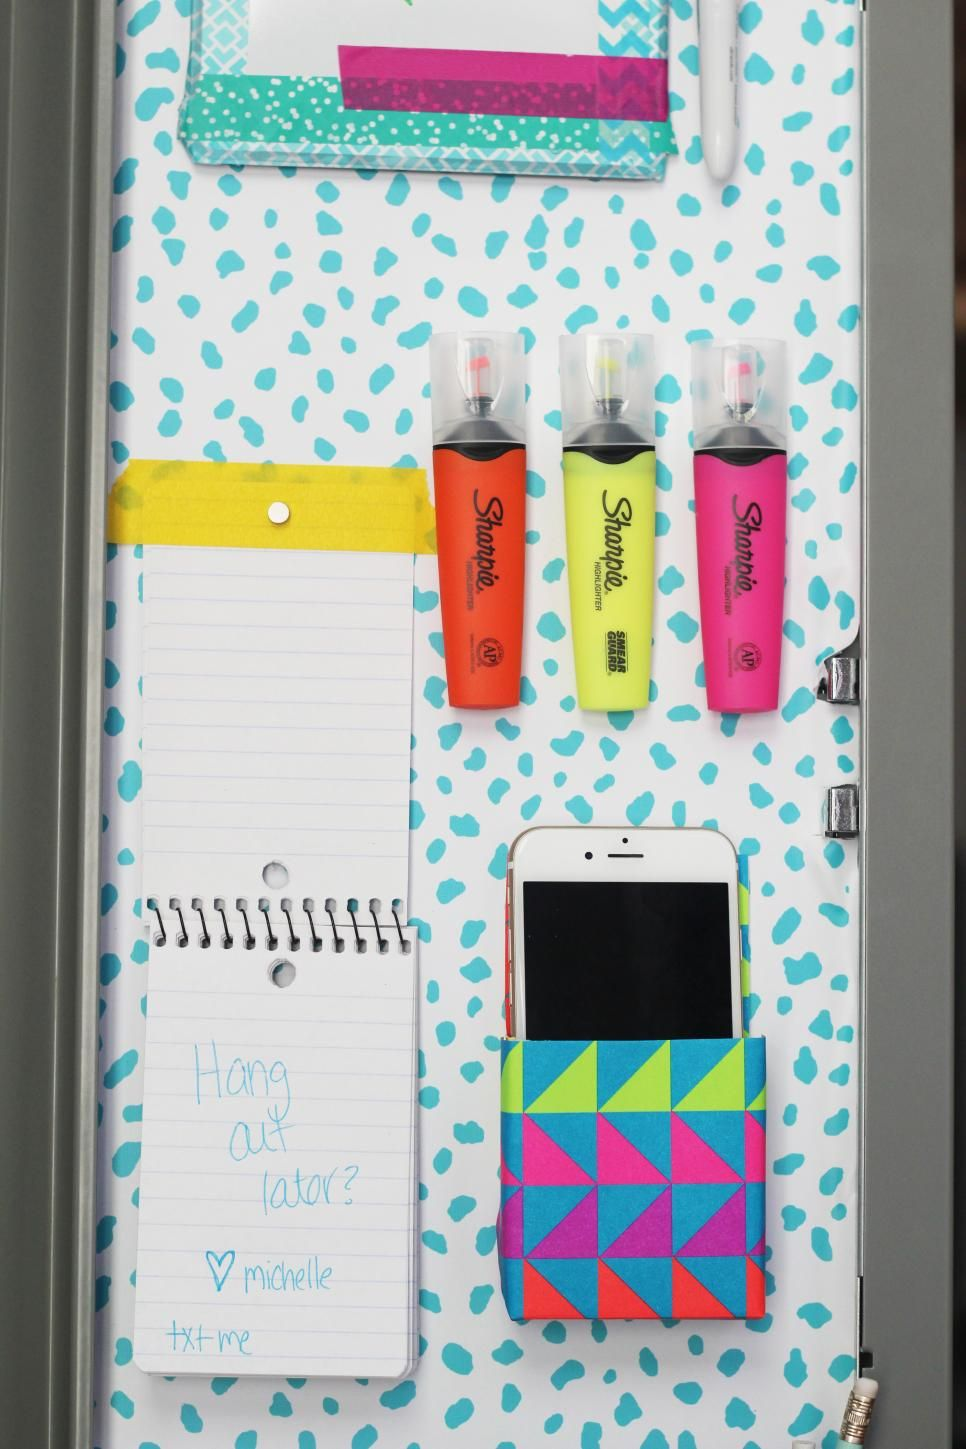 22 Diy Locker Decorating Ideas Decoraciones De Casillero Casilleros Organizacion En La Escuela